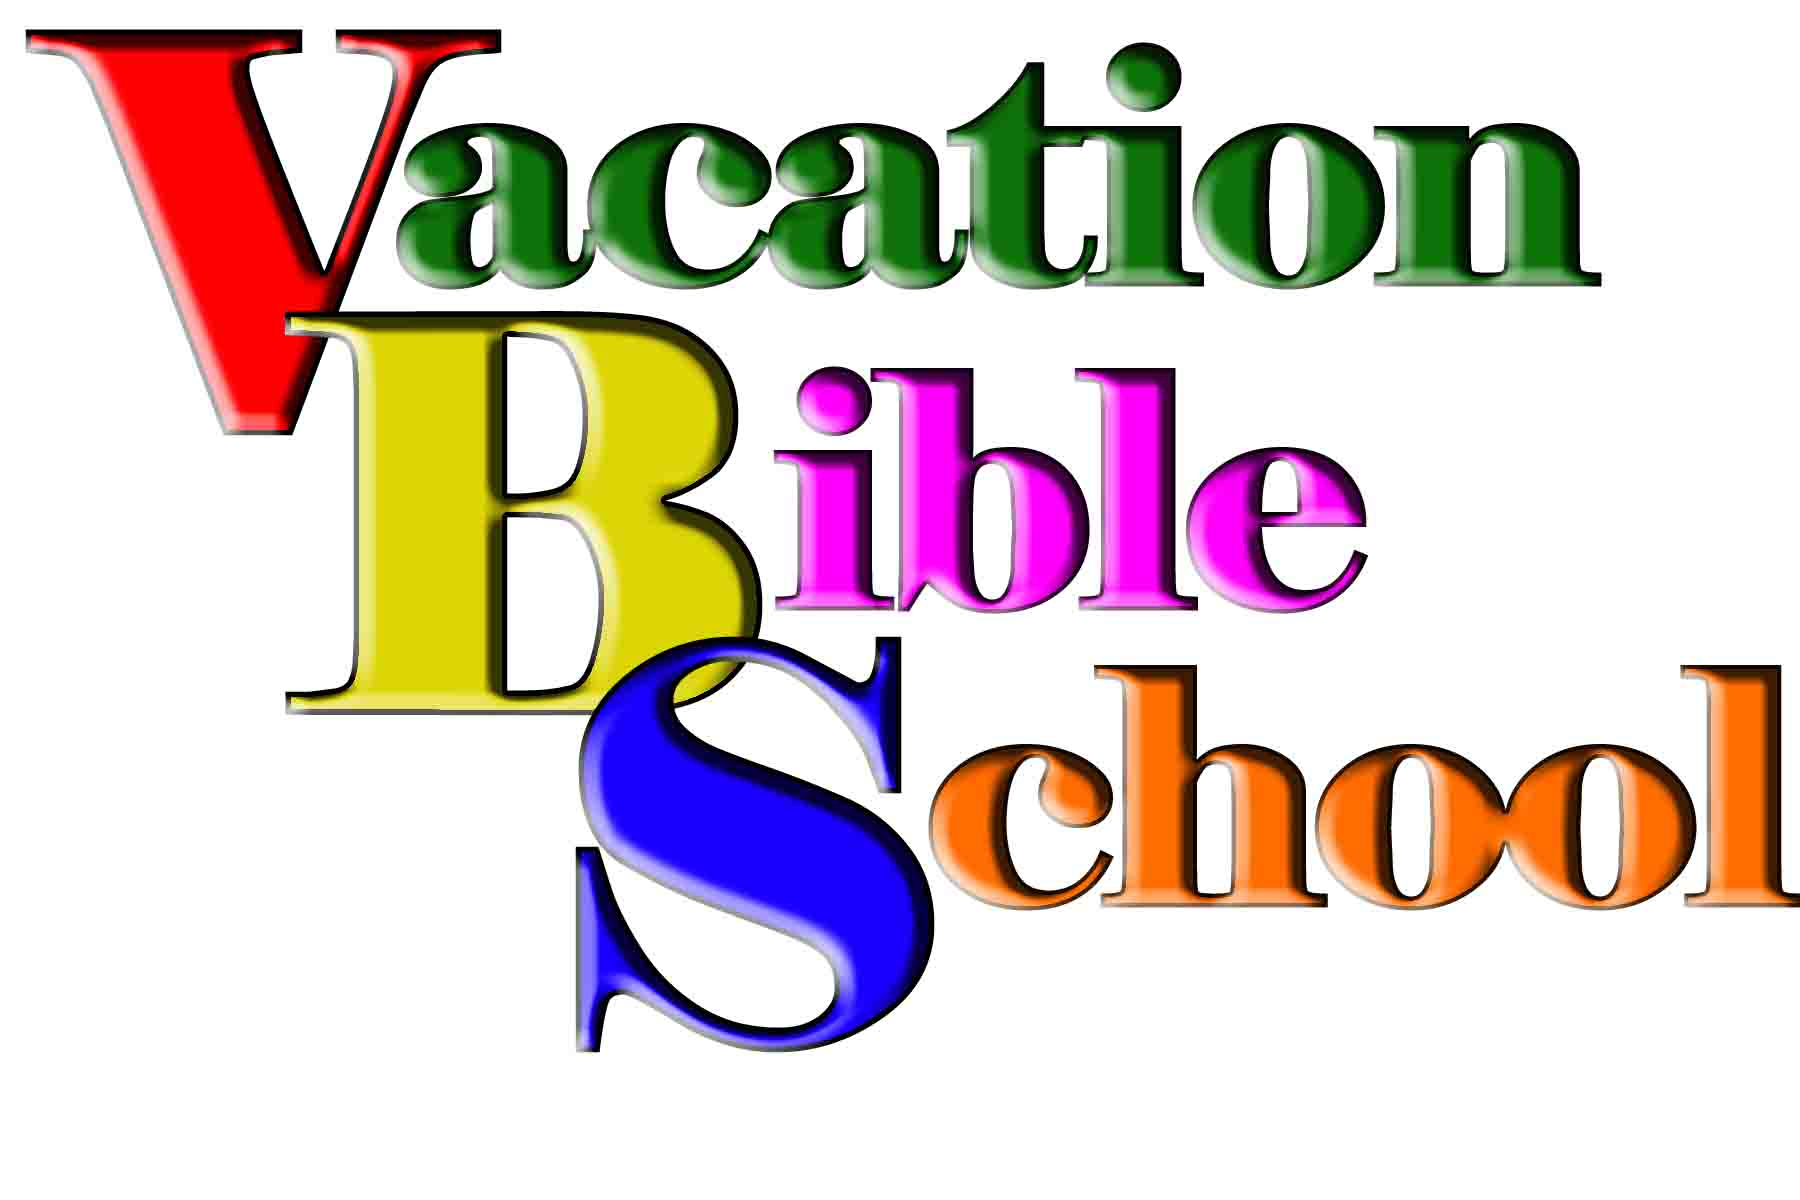 Vacation clipart logo June Bible School At 3rd